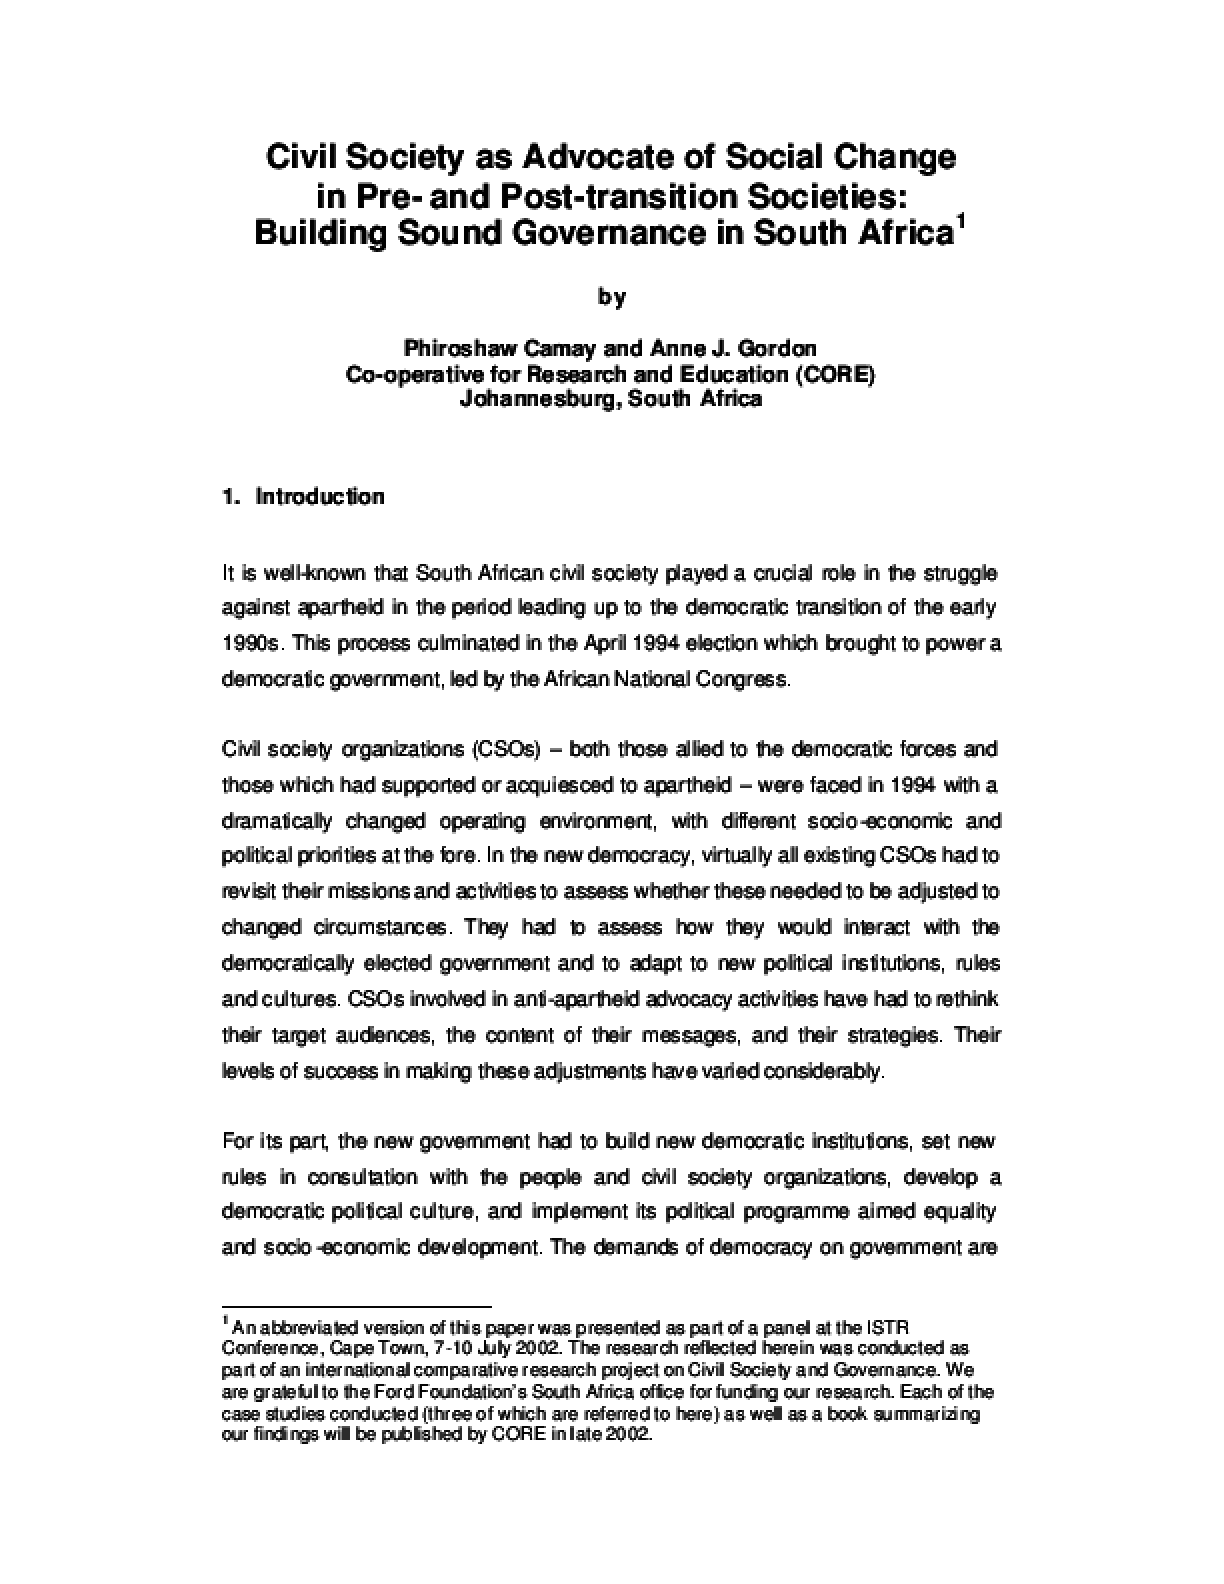 Civil Society as Advocate of Social Change in Pre-and Post-transition Societies: Building Sound Governance in South Africa